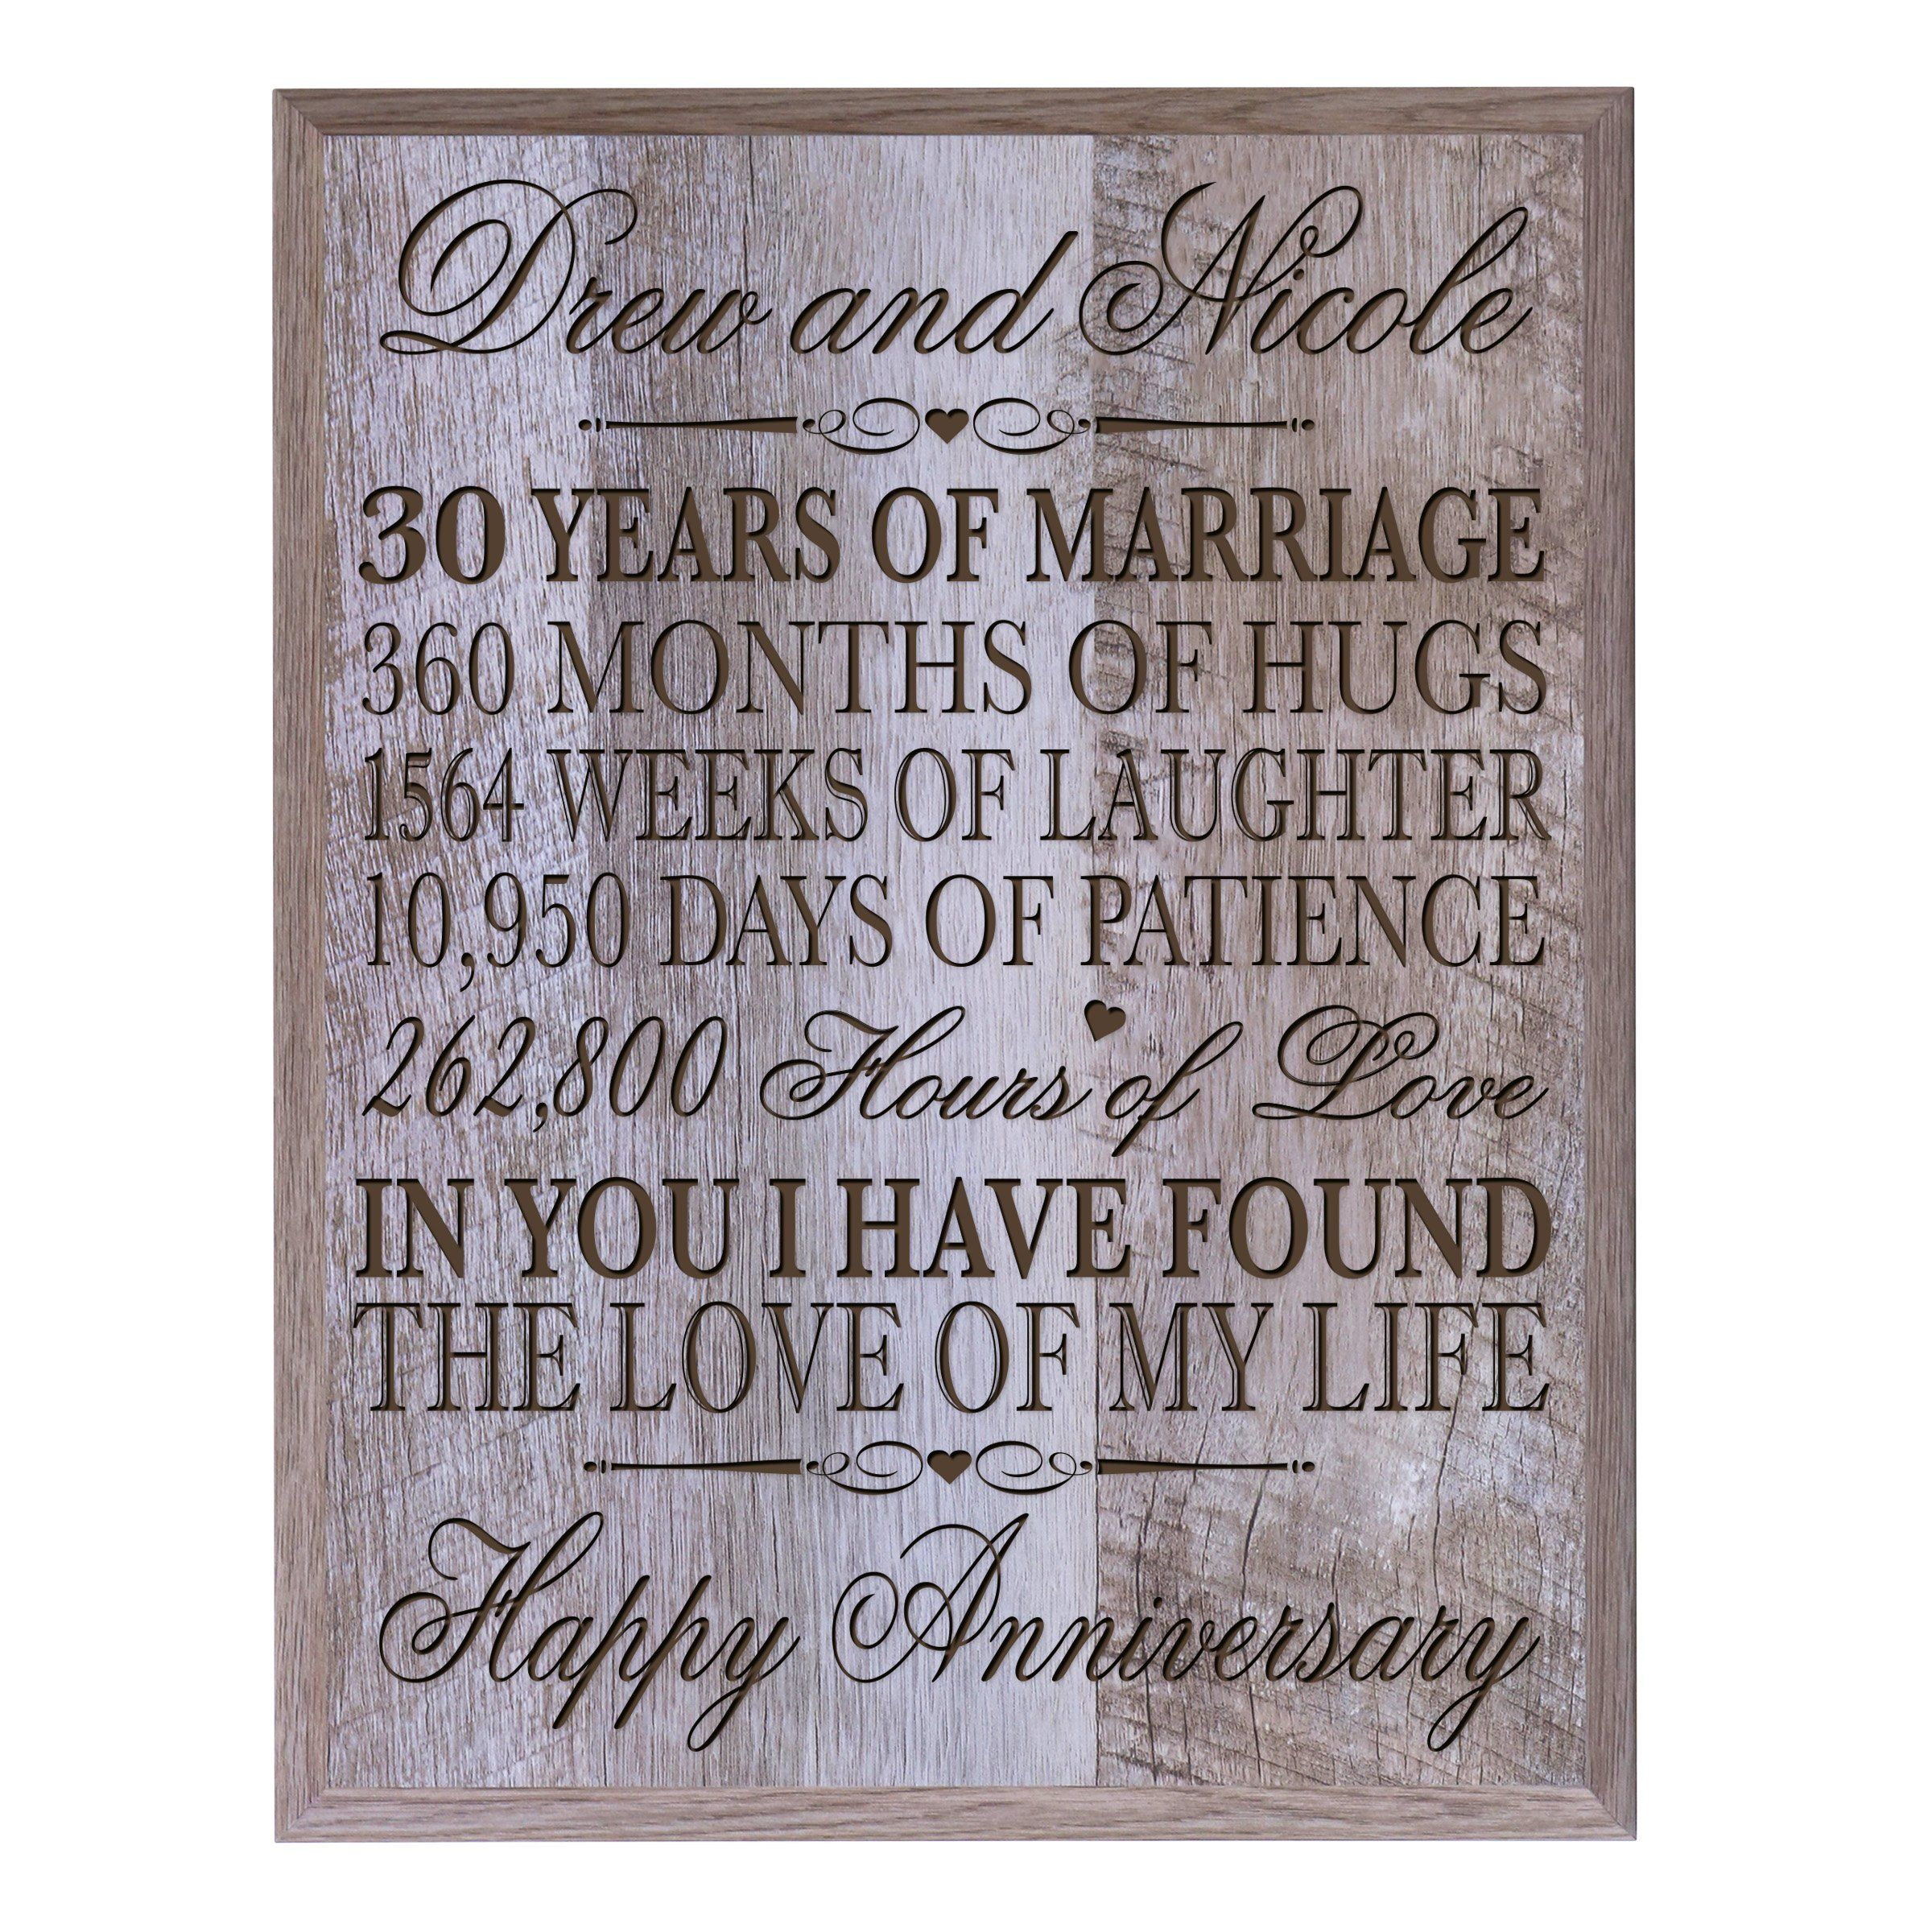 30th Wedding Anniversary Gift Ideas For Parents: Personalized 30th Anniversary Gifts For Him Her Couple